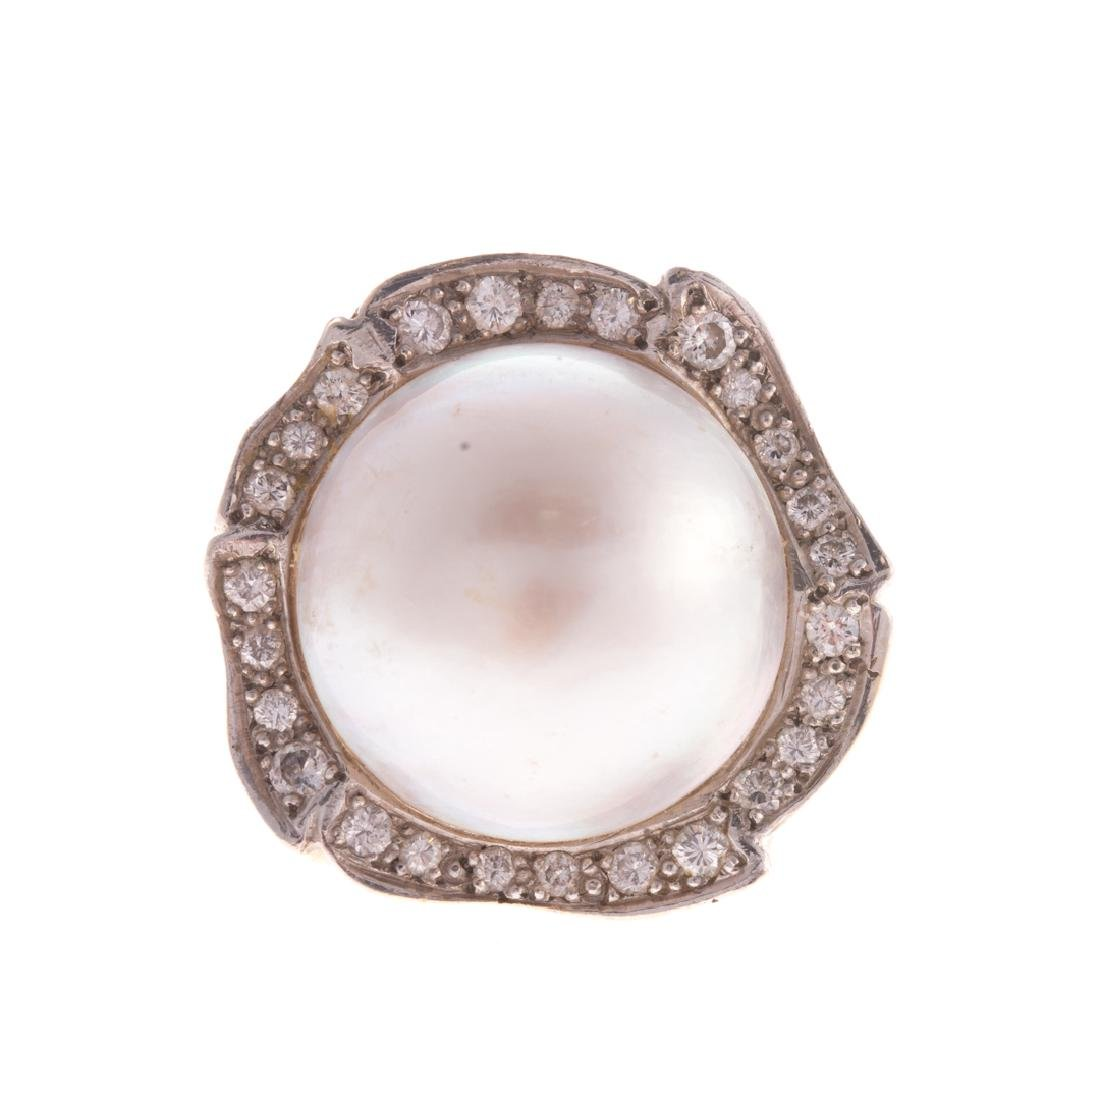 A Lady's 14K Mabe Pearl and Diamond Ring